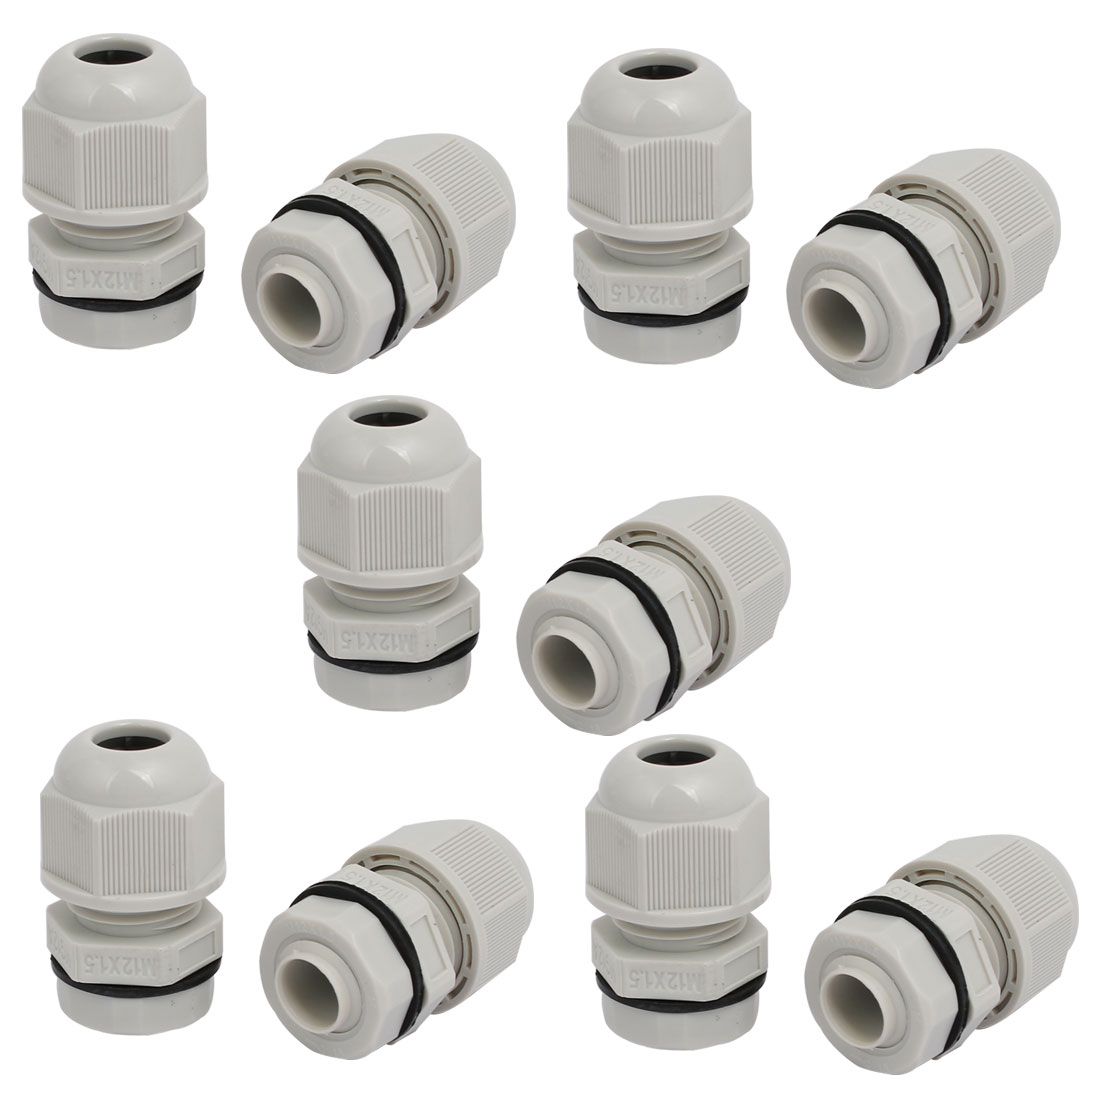 M12x1.5mm 1mm-2.6mm Adjustable 3 Holes Nylon Cable Gland Joint Gray 10pcs